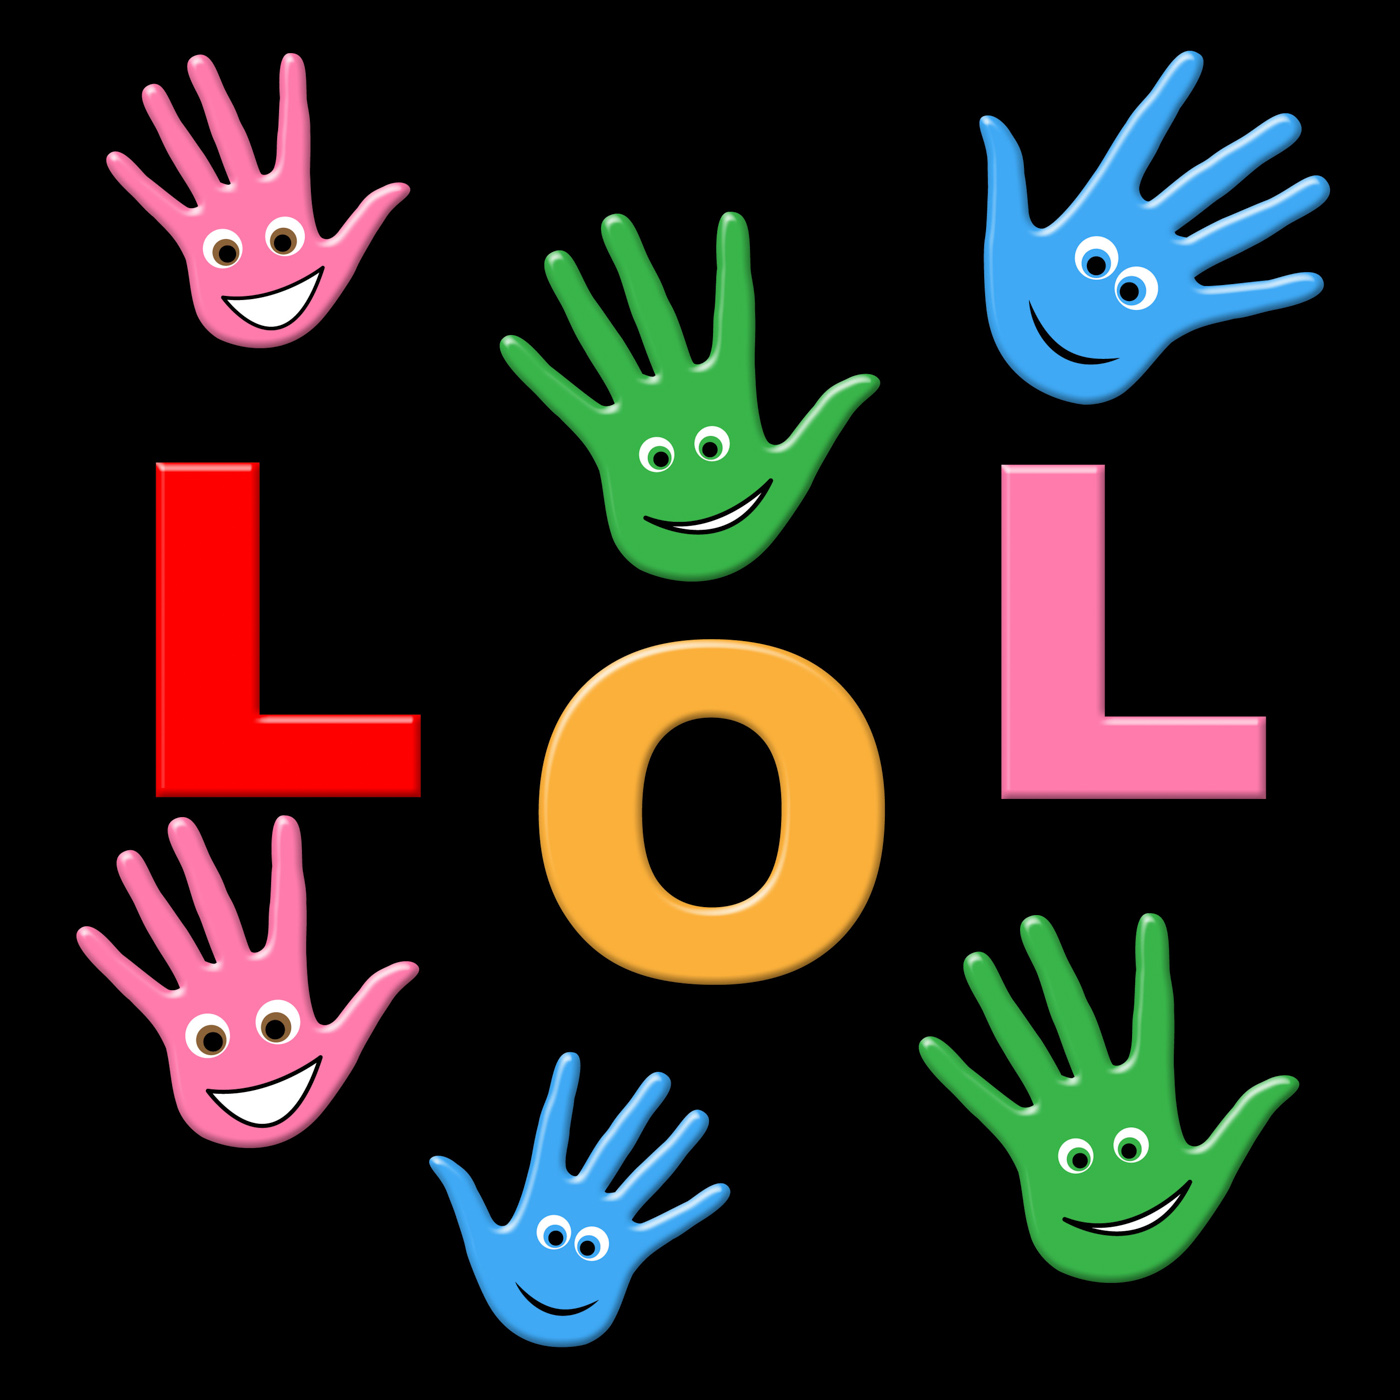 Kids lol indicates laugh out loud and haha photo